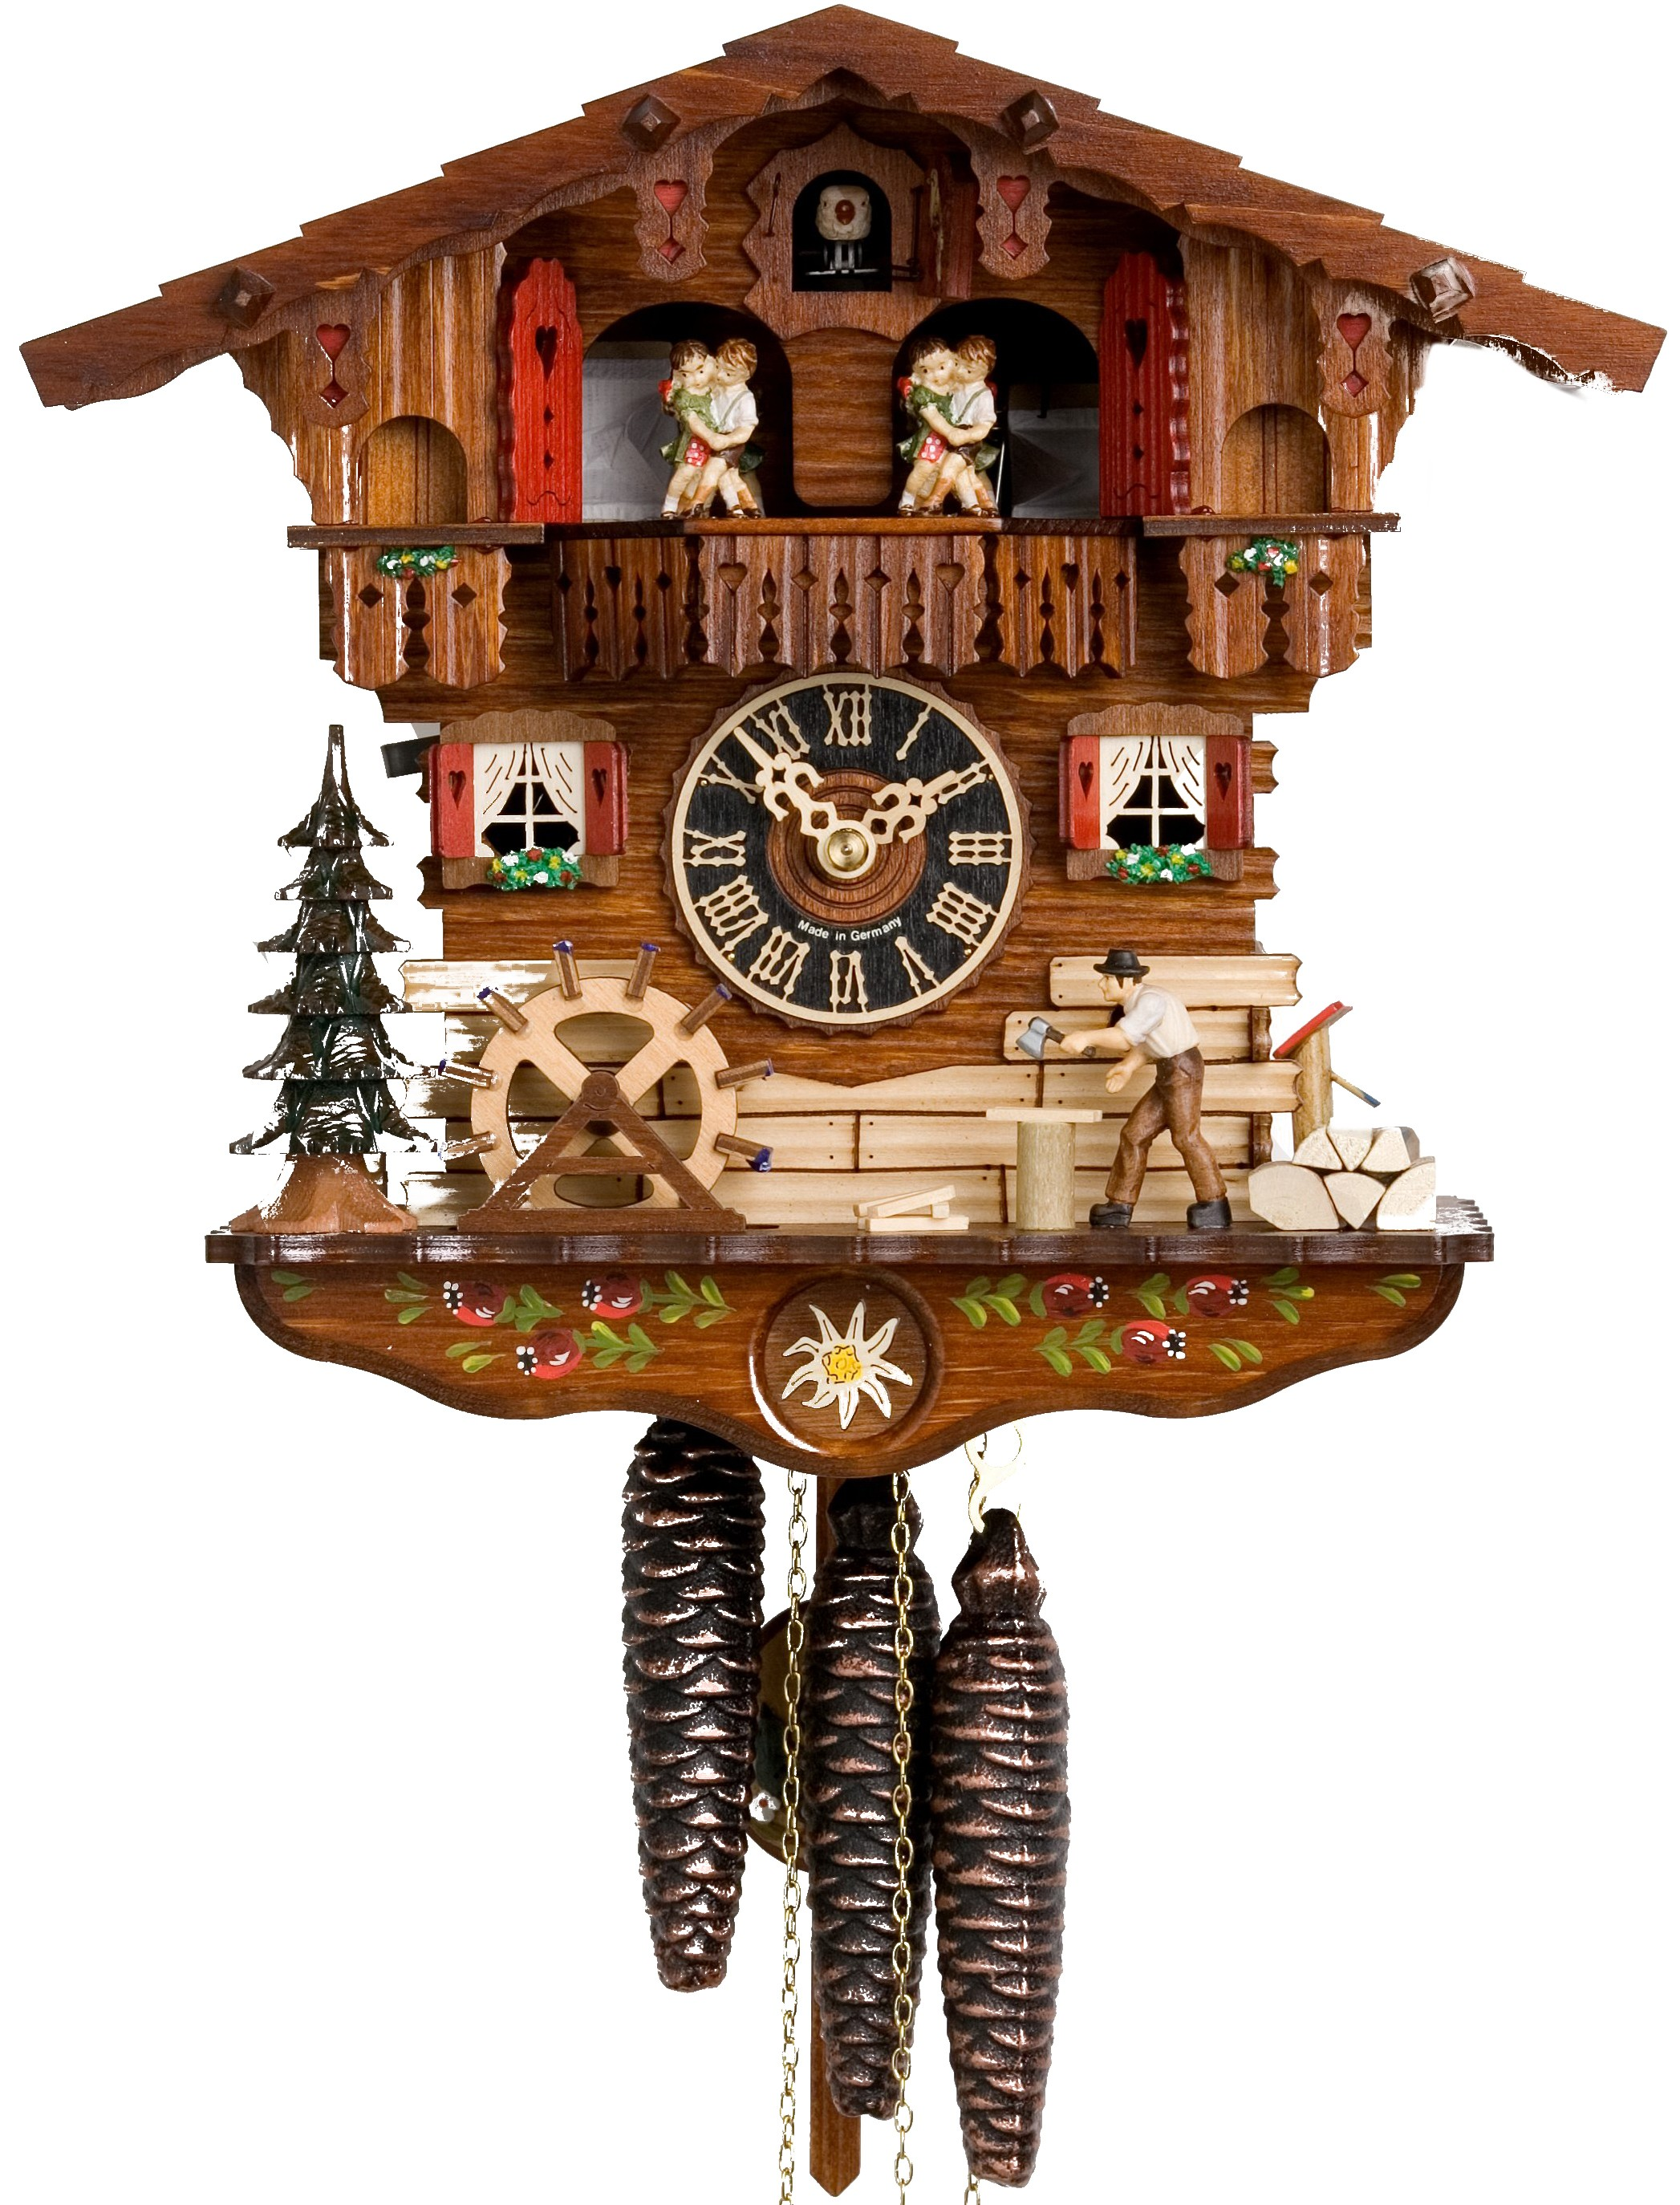 chic Moving Wood Chopper and Dancers Chalet 1 Day Mechanical cuckoo clock for home accessories ideas